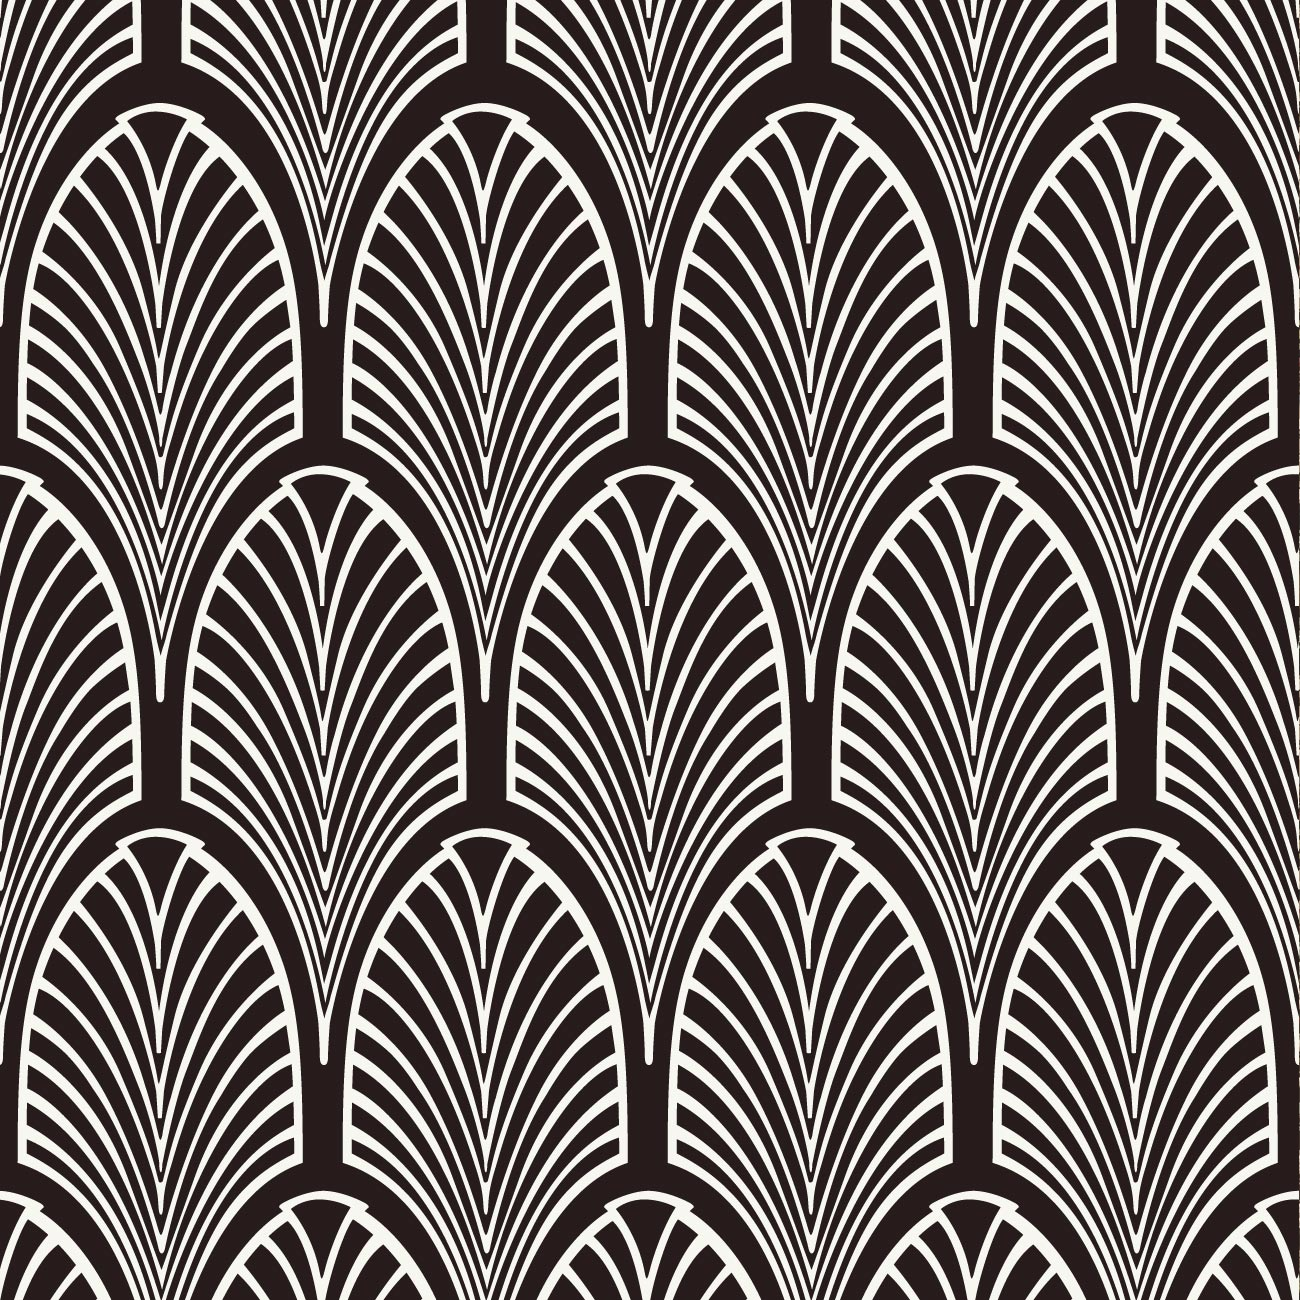 Deco Wallpaper Black And White The